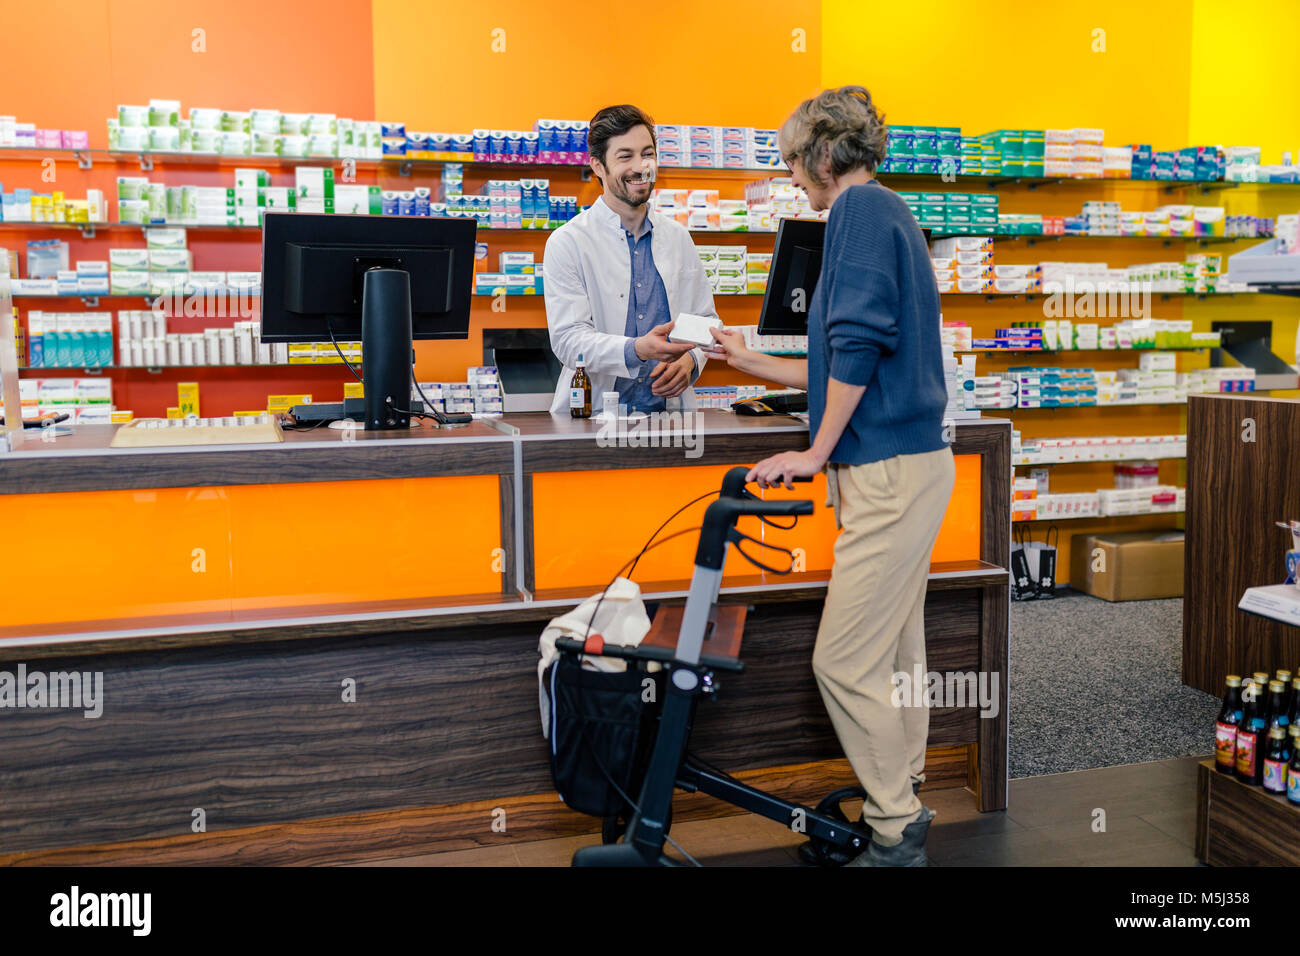 Pharmacist giving medicine to customer with wheeled walker in pharmacy - Stock Image